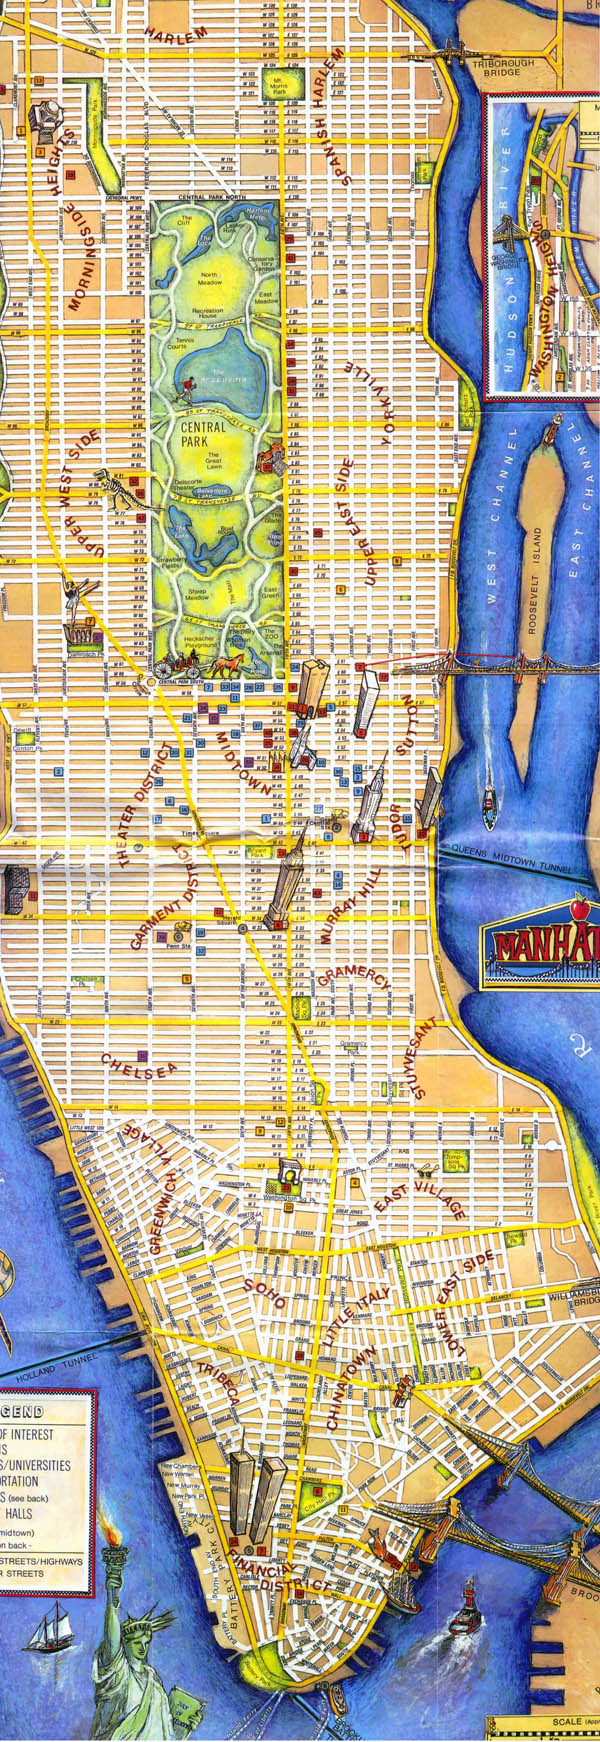 Tourist map of Manhattan. Manhattan tourist map.